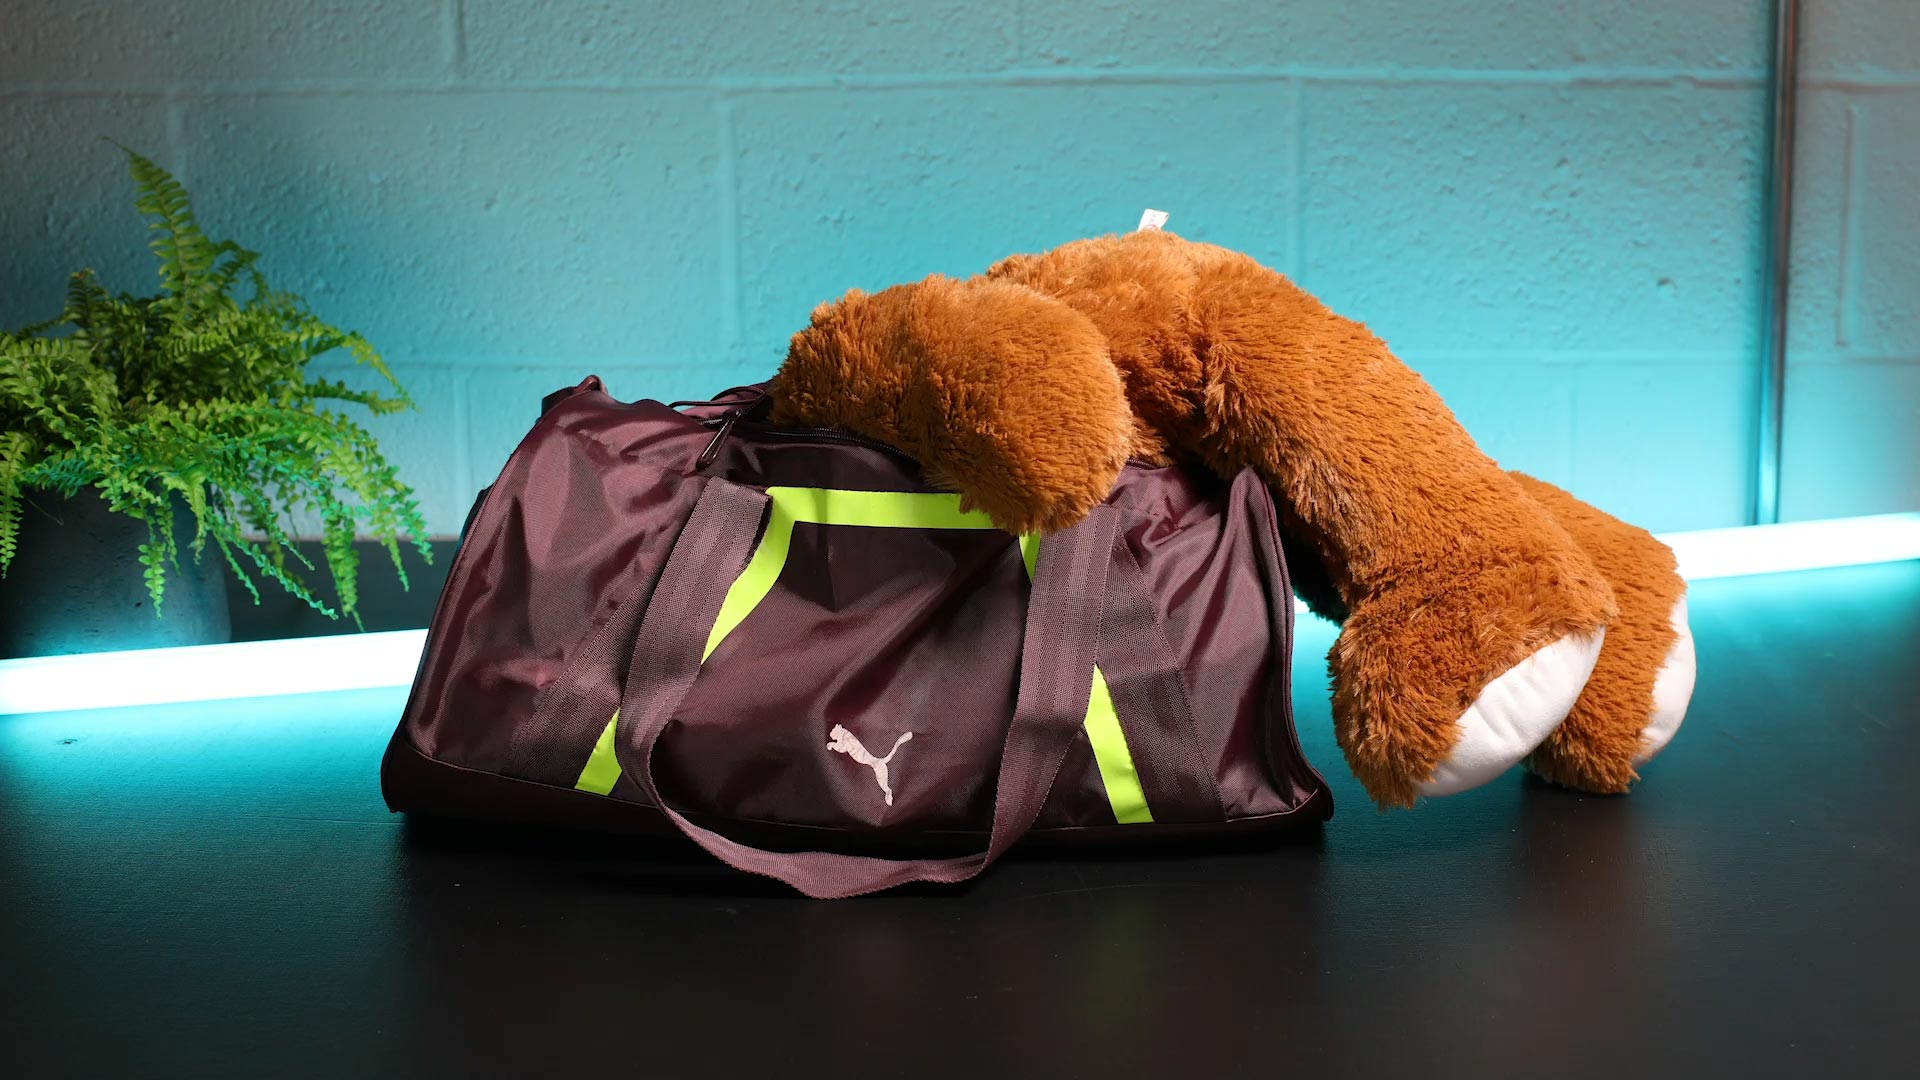 Teddy dives into Puma sports bag stop motion